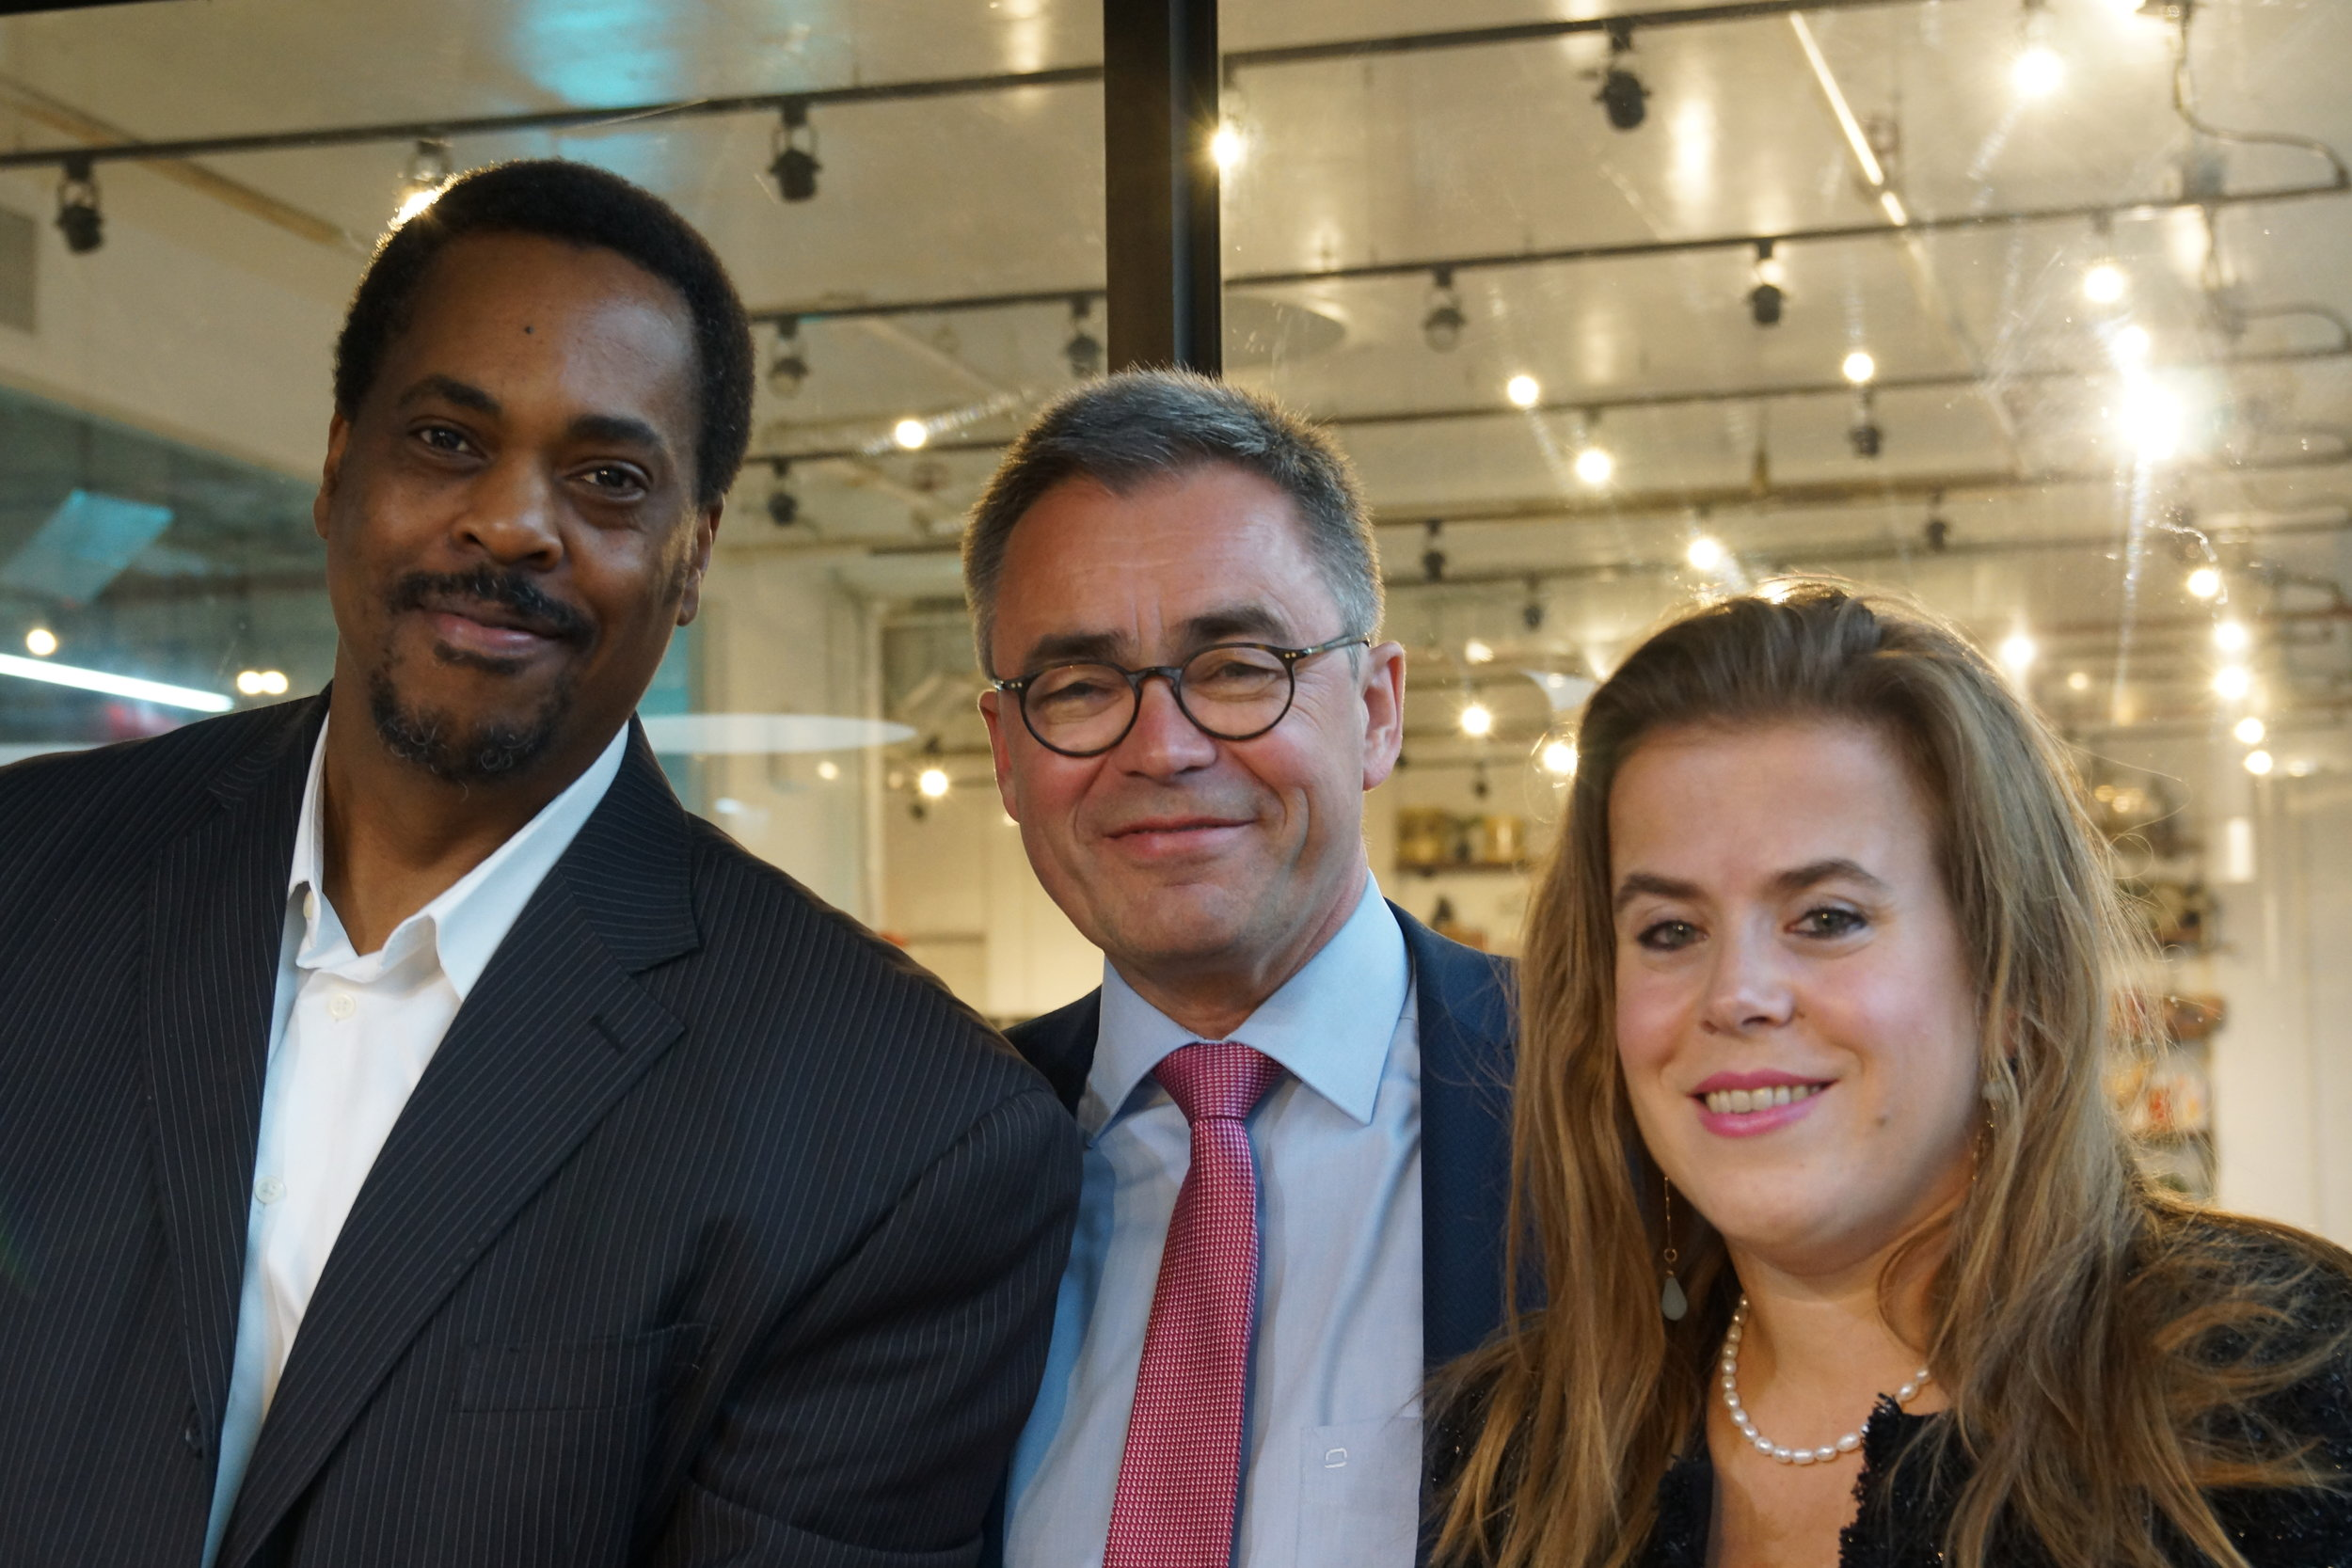 Clayton Banks (Silicon Harlem), Jos Wienen (Mayor of the City of Haarlem) & Valerie Vallenduuk